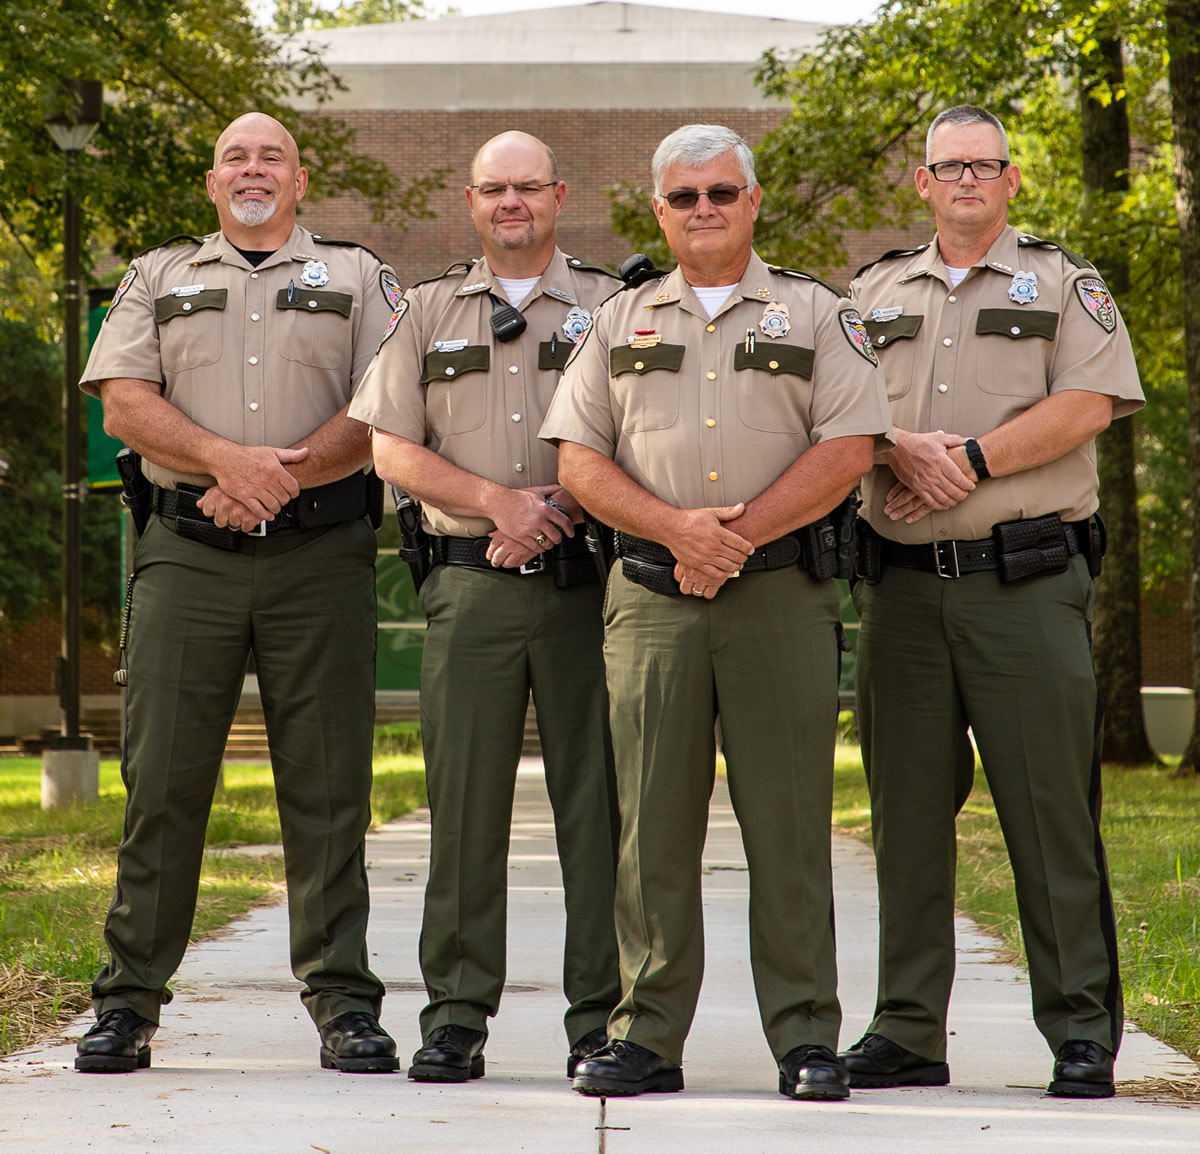 Motlow campus police stand ready to provide a safe and secure environment for all four Motlow State campuses. L-r are Joe Brown, McMinnville campus; Allen Rhodes, Fayetteville campus; Ray Higginbotham, Moore County campus; and Randy Morris, Jr., Smyrna campus. Motlow Staff Photo.